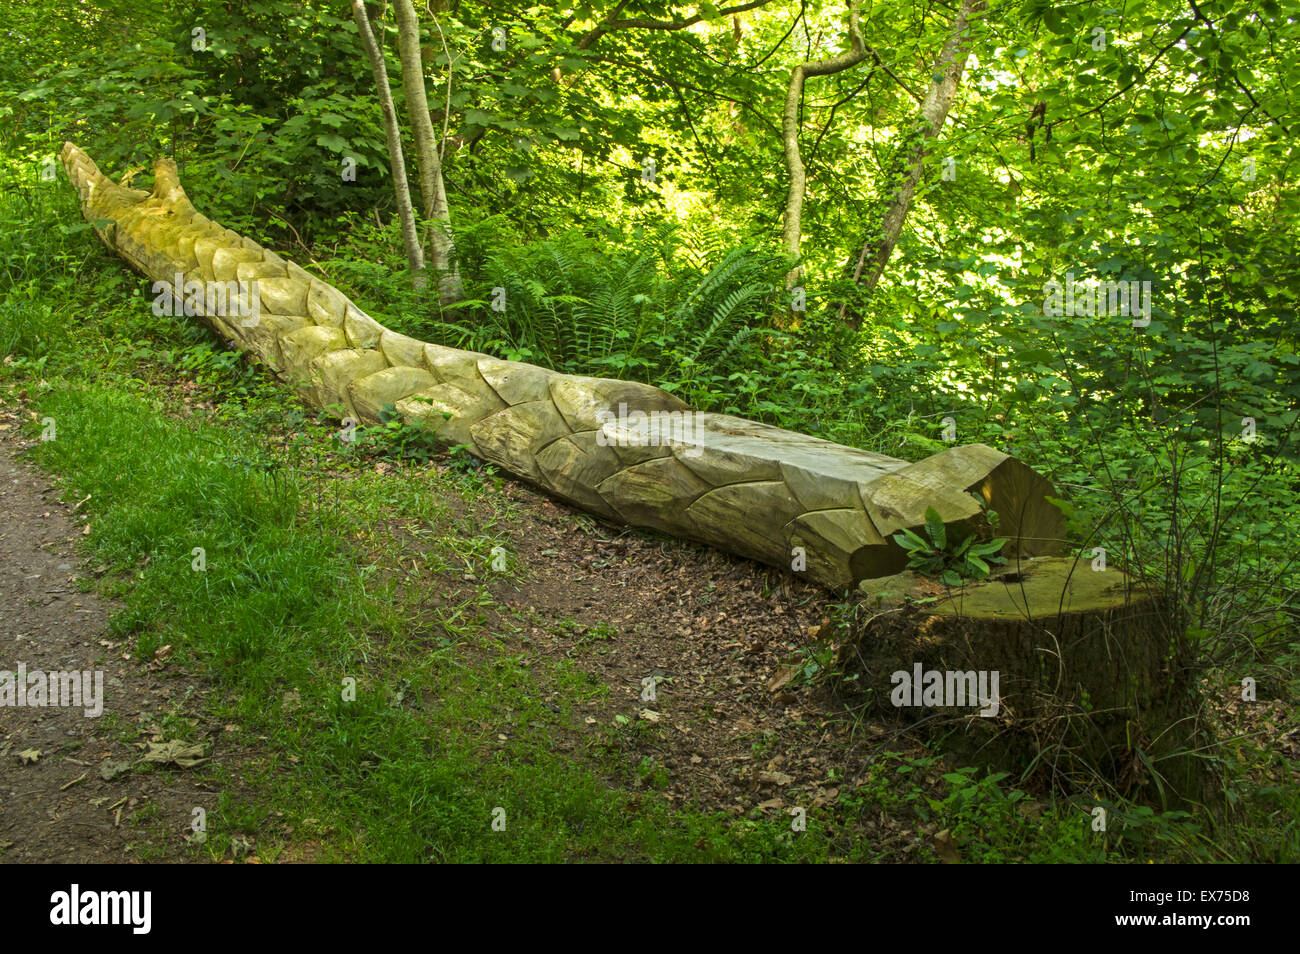 A fallen tree carved to look like a dragon with a seat as well at The Dingle, Local Nature Reserve, Llangefni, Anglesey, - Stock Image